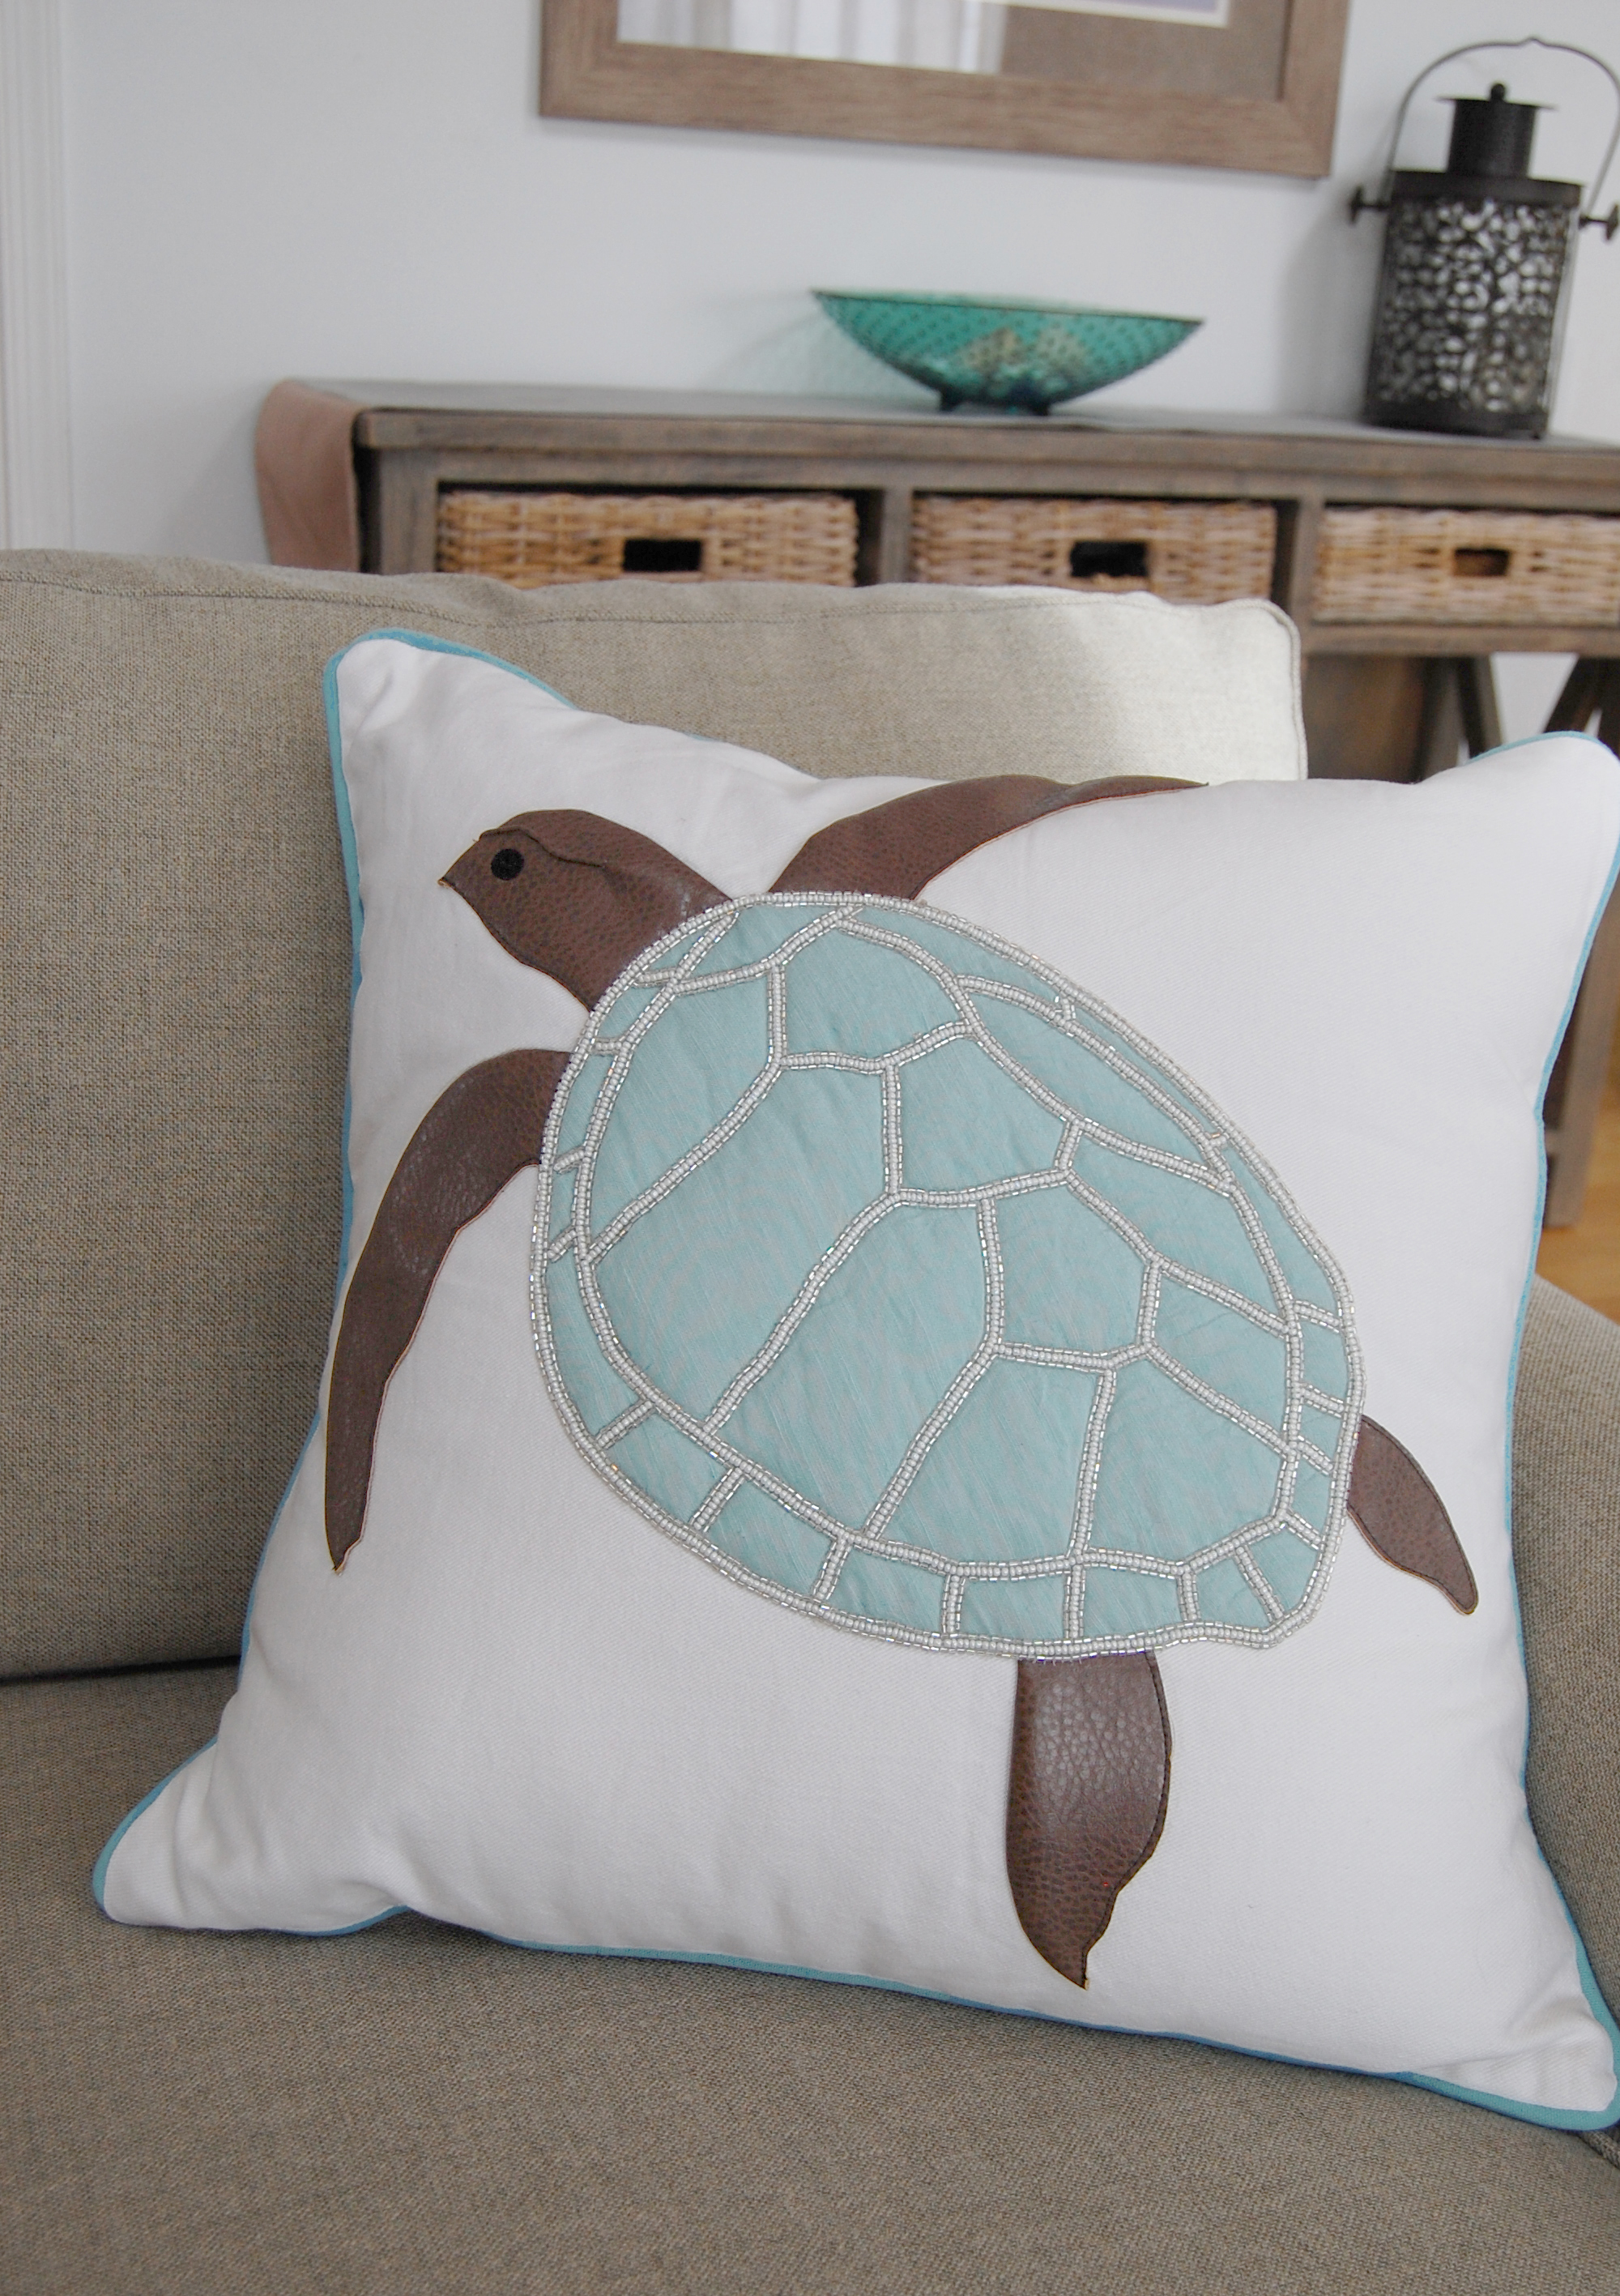 Rightside Pillows